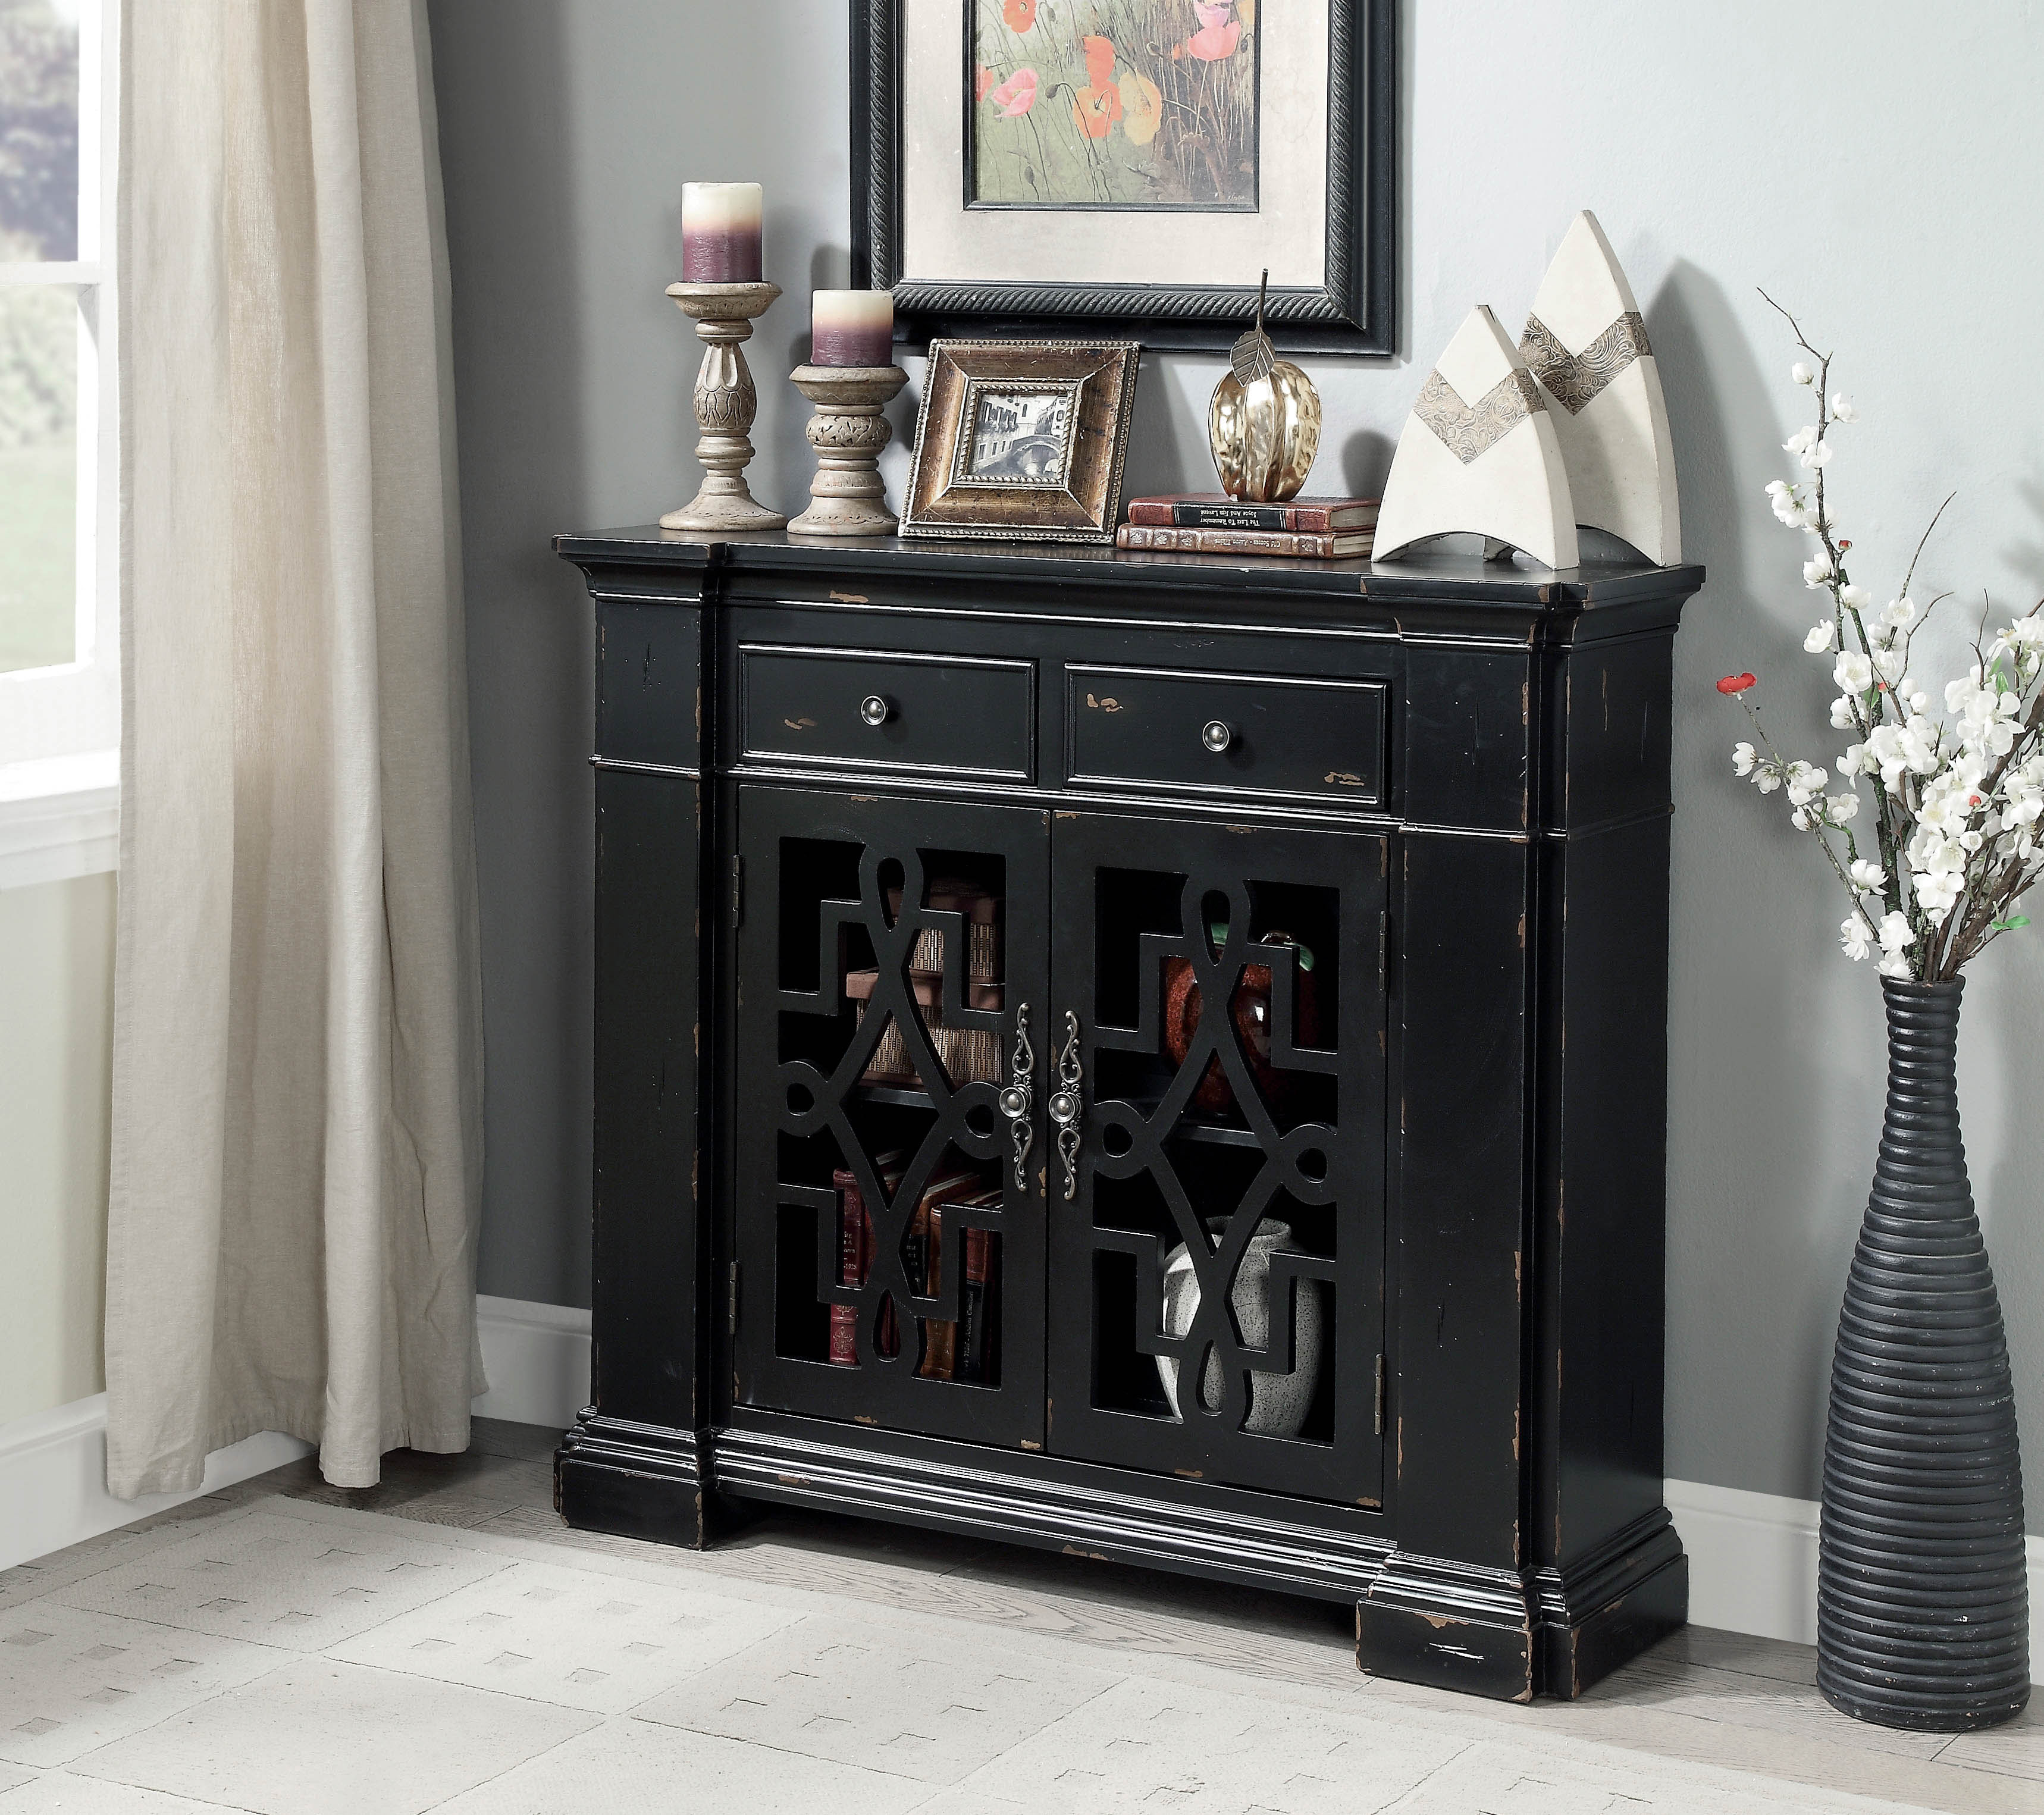 Delicieux Furniture Of America Cristiano Vintage Entryway Cabinet